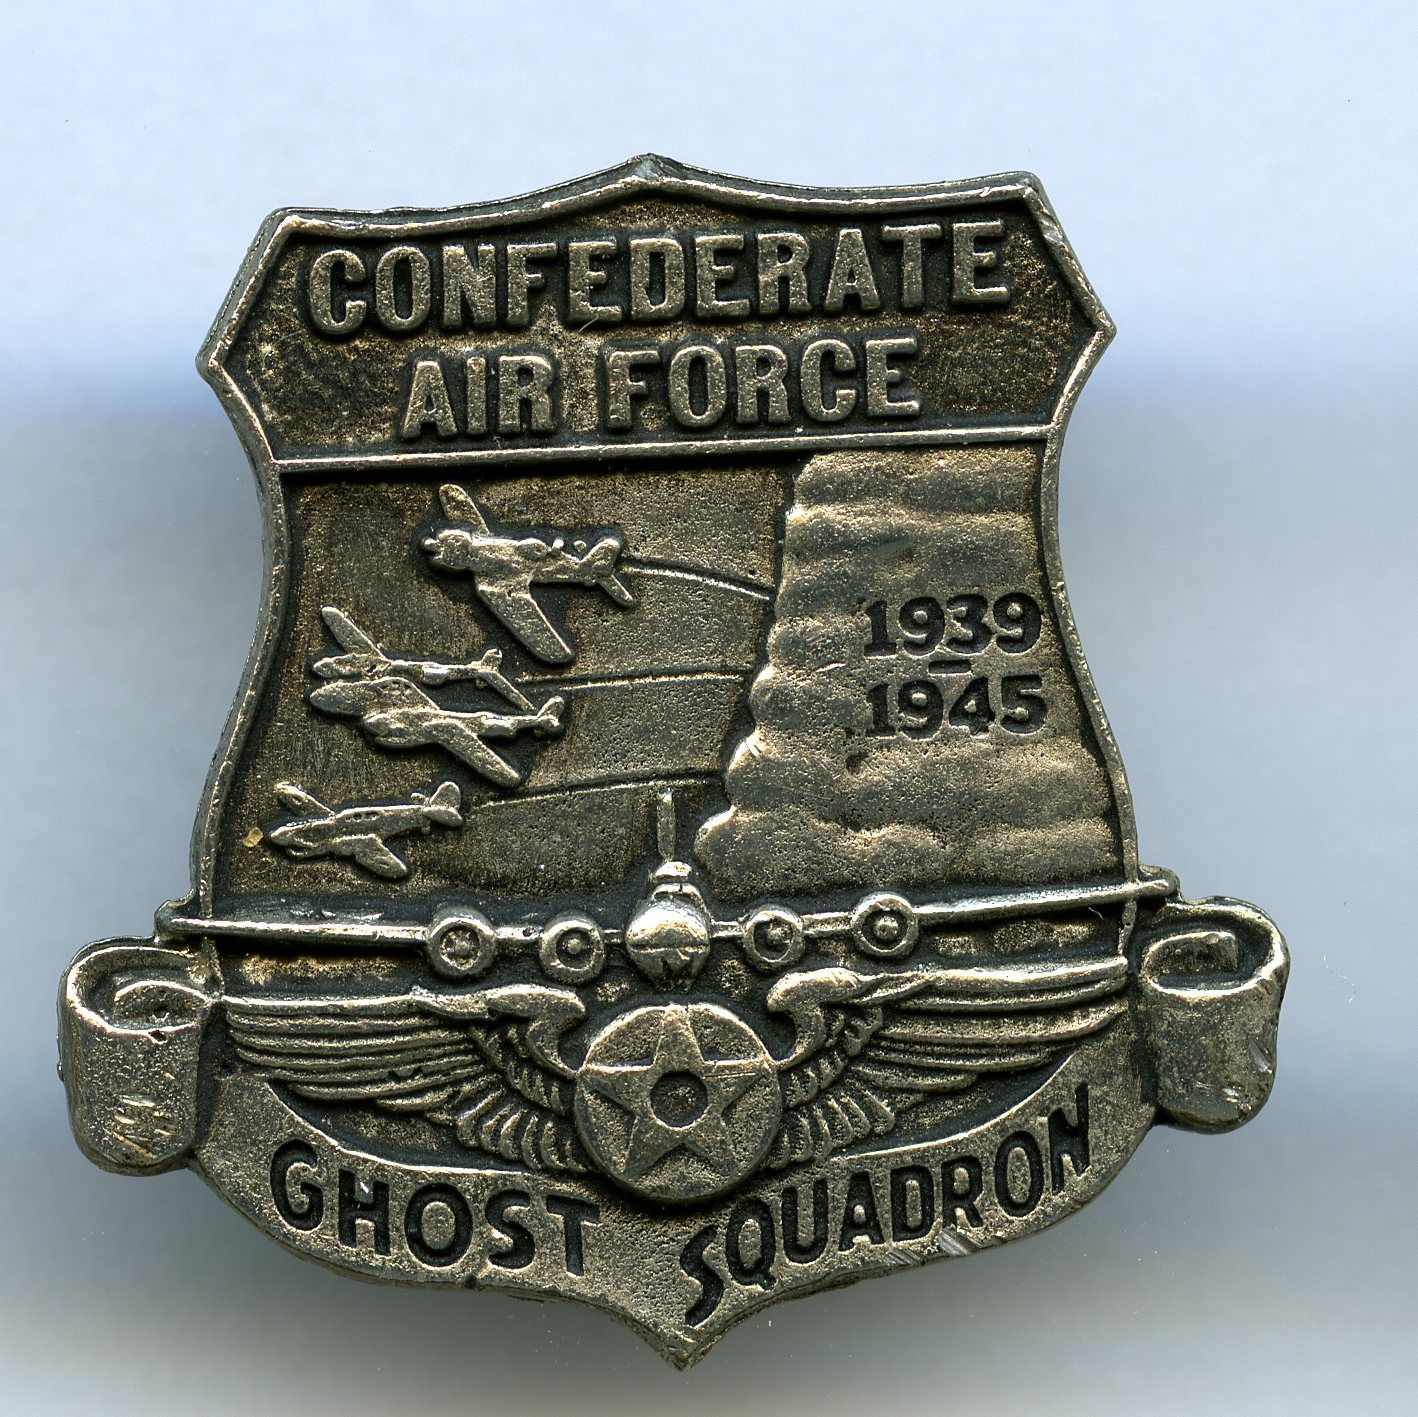 Confederate Air Force Ghost Squadron Confederate, Air